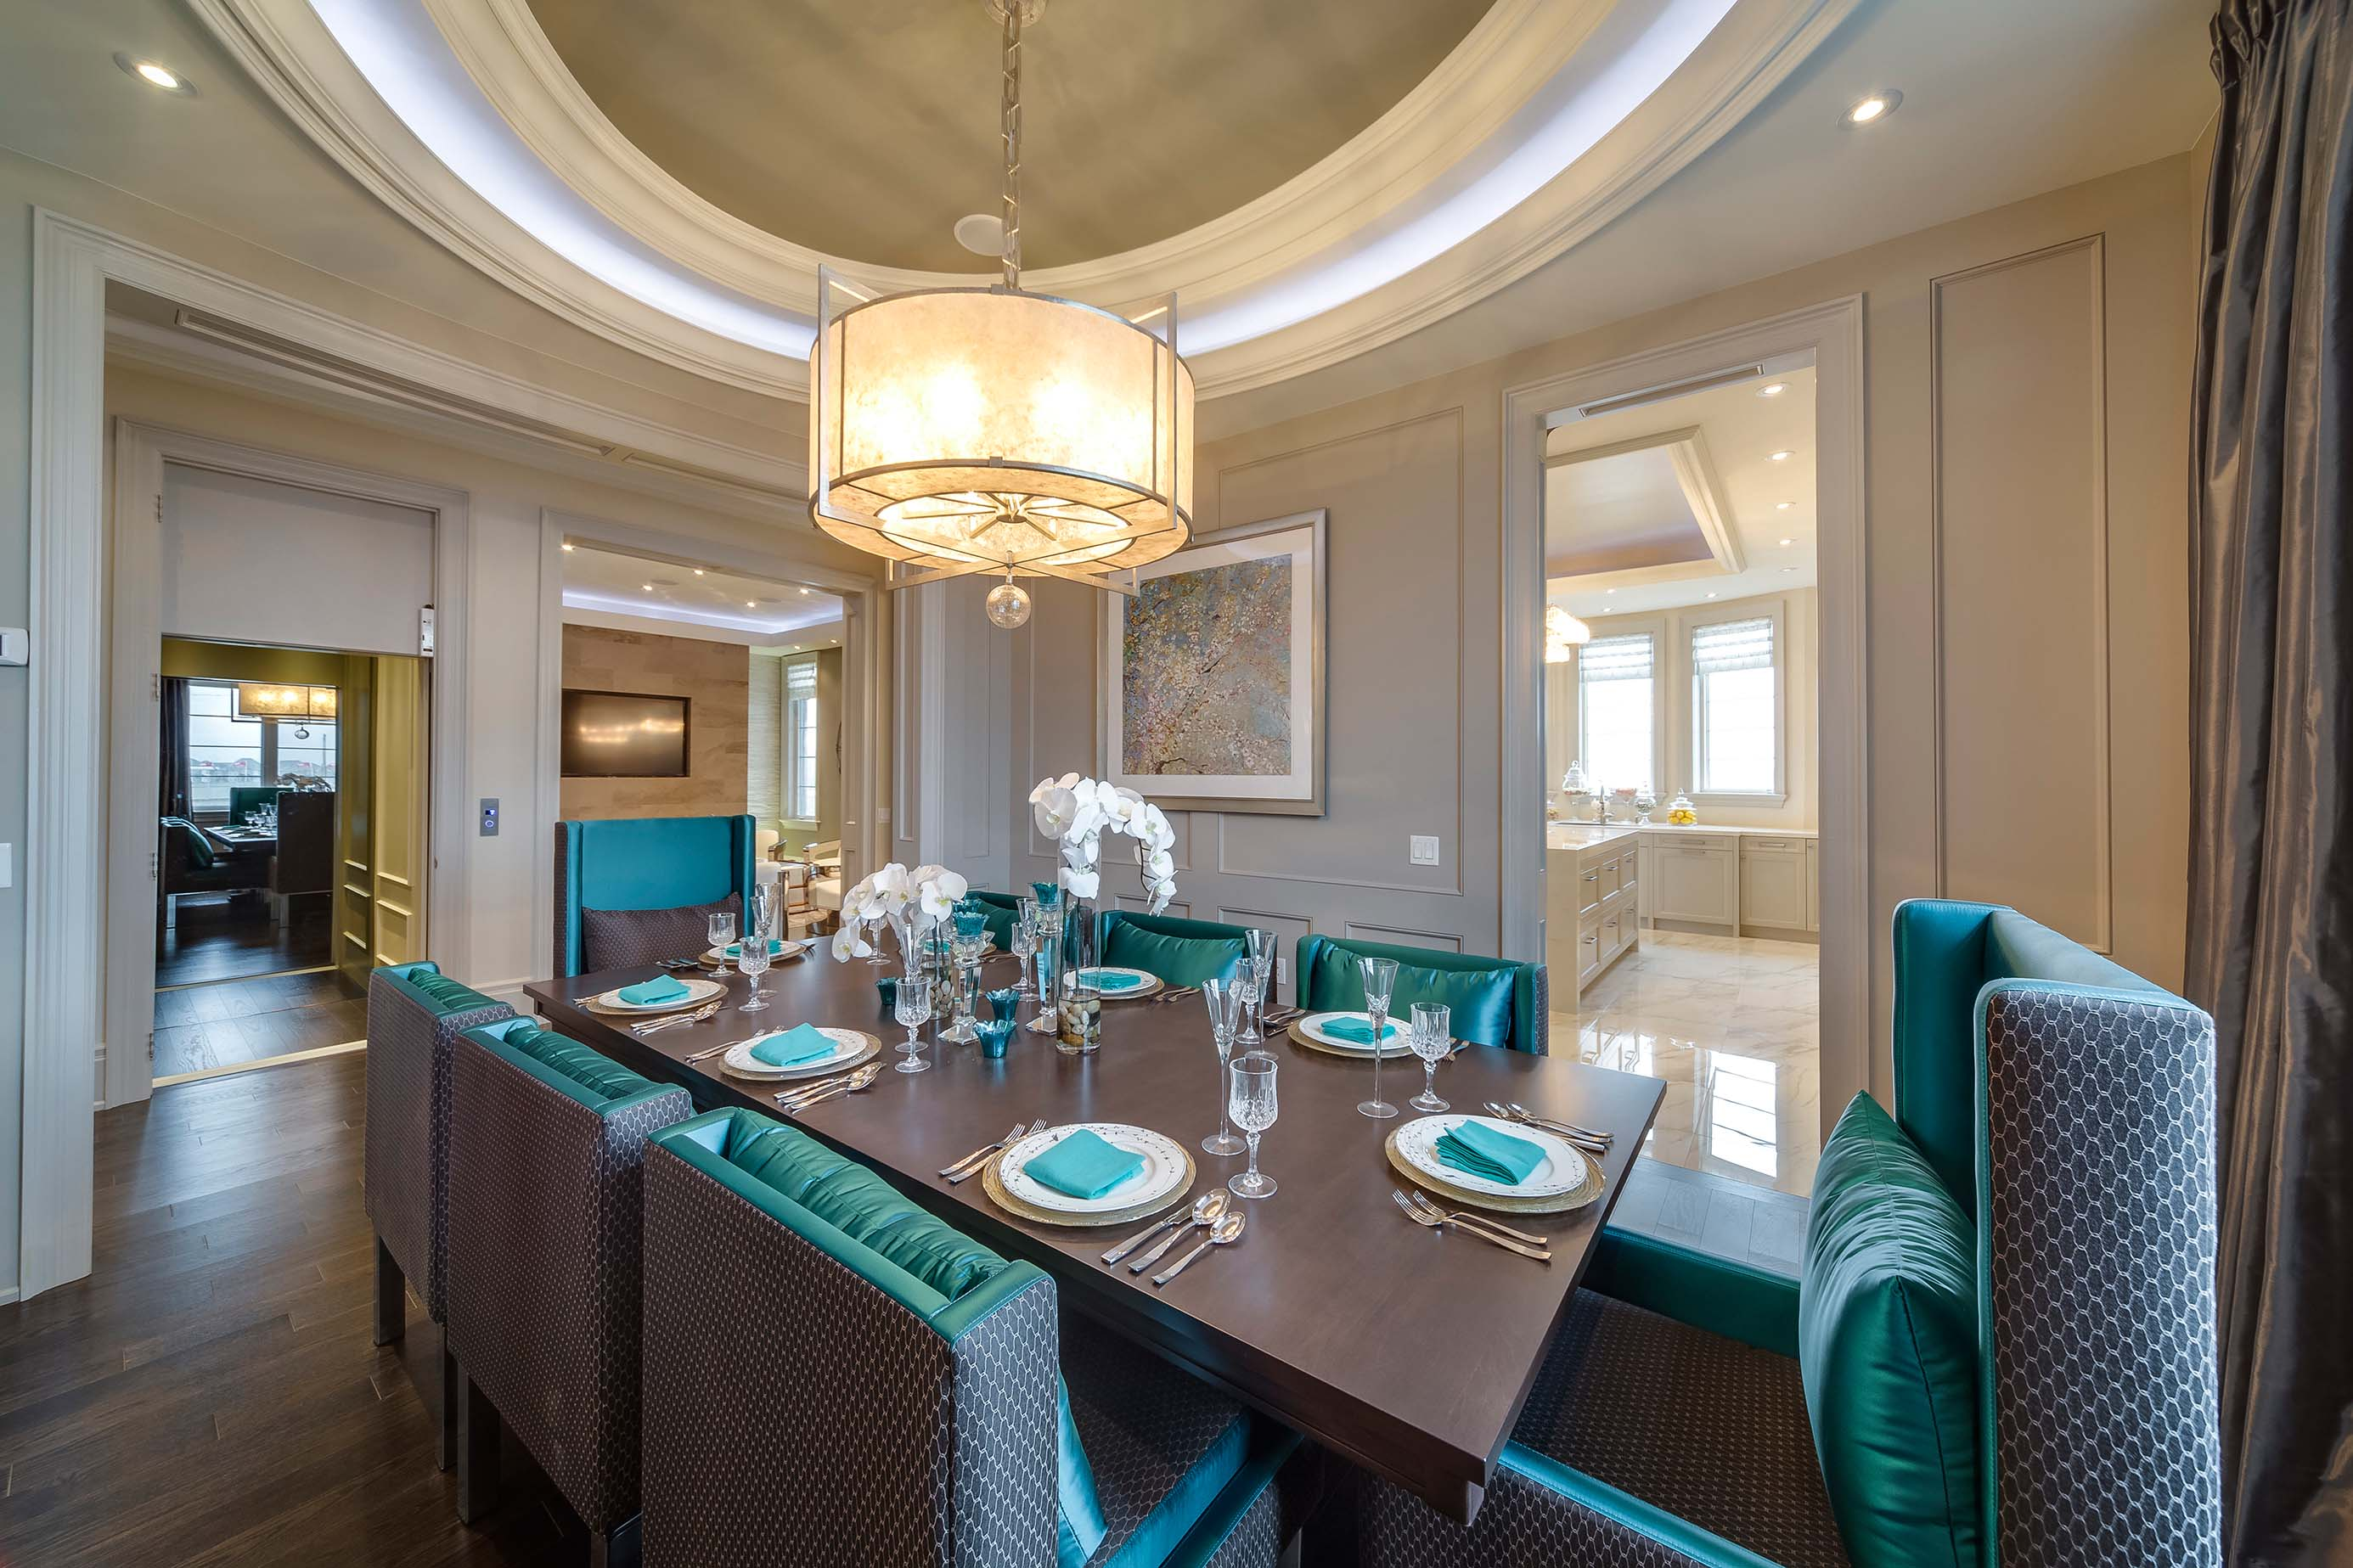 The Latest Trends In Dining Room Lighting